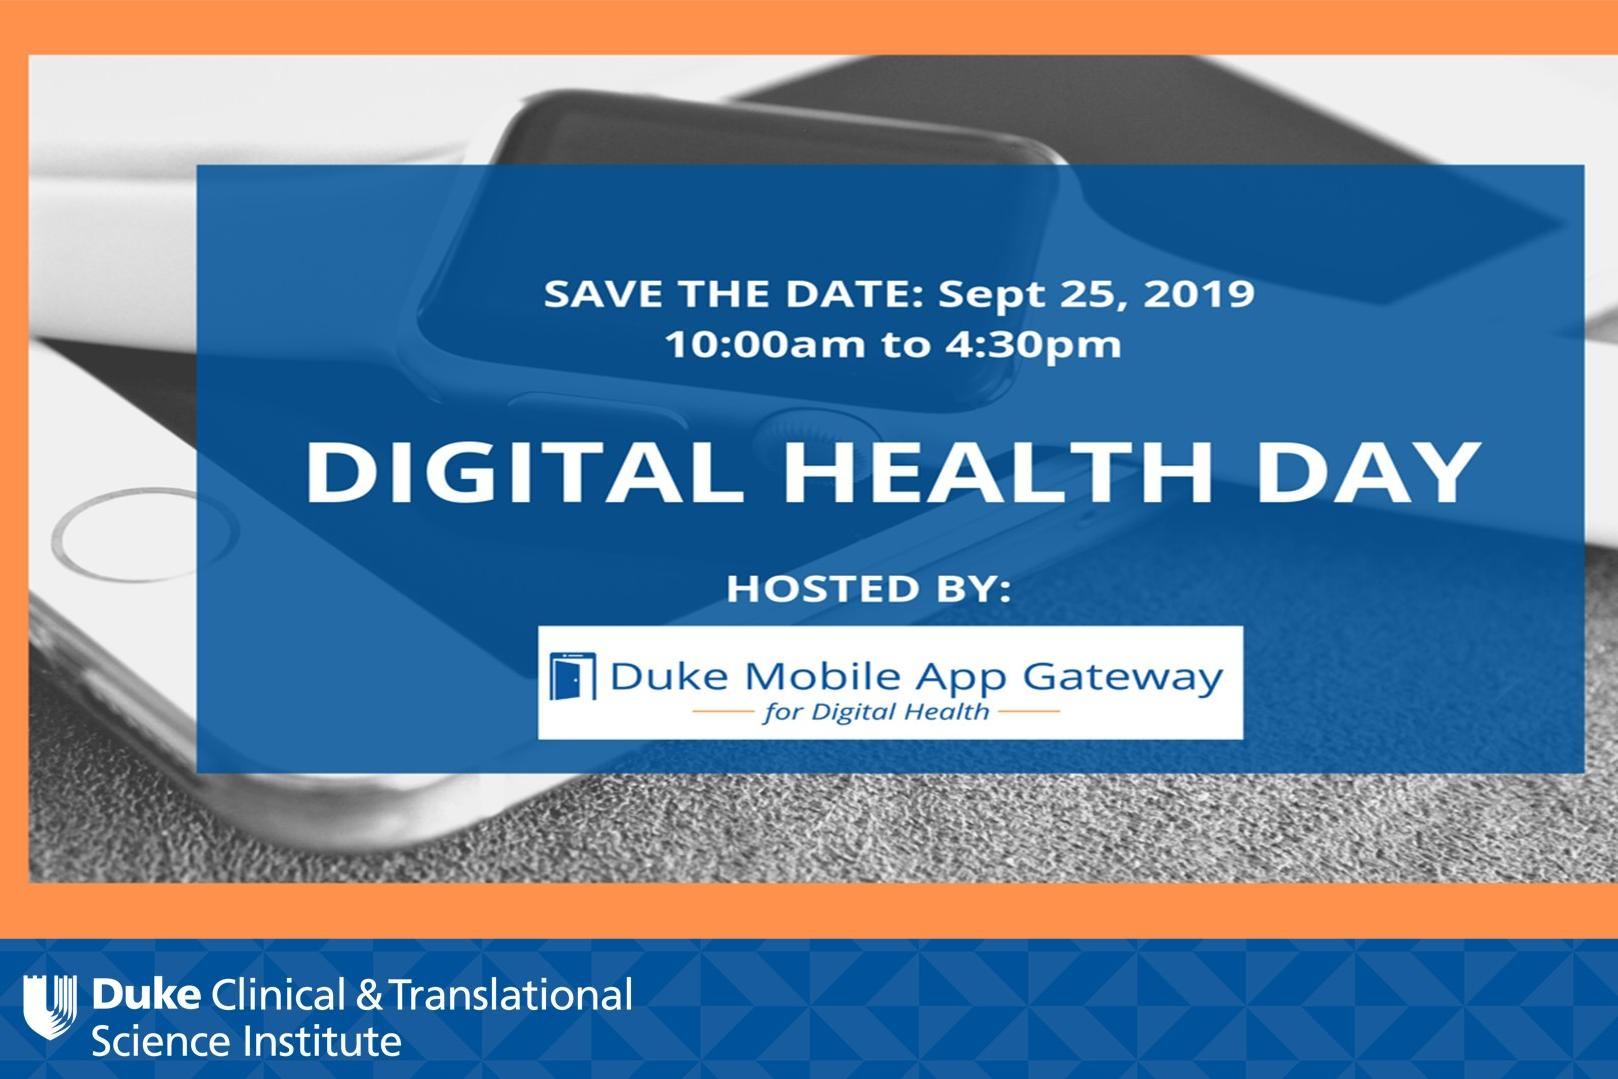 Description Digital Health Day 2019  Save the Date: The Duke Mobile App Gateway is excited to announce Digital Health Day on September 25, 2019. This year¿s theme for our one day conference is ¿Digital Health Across the Lifespan¿. The program will include insights from experts in research, clinical care, and device development and will explore how health tech is used from pediatrics to gerontology.  Lunch will be provided.  We will be accepting abstracts for morning poster presentations starting in August 2019. Watch for announcements on Twitter and via our newsletter!  For additional information, please contact Leatrice Martin.  Sponsored by the Duke Clinical & Translational Science Institute